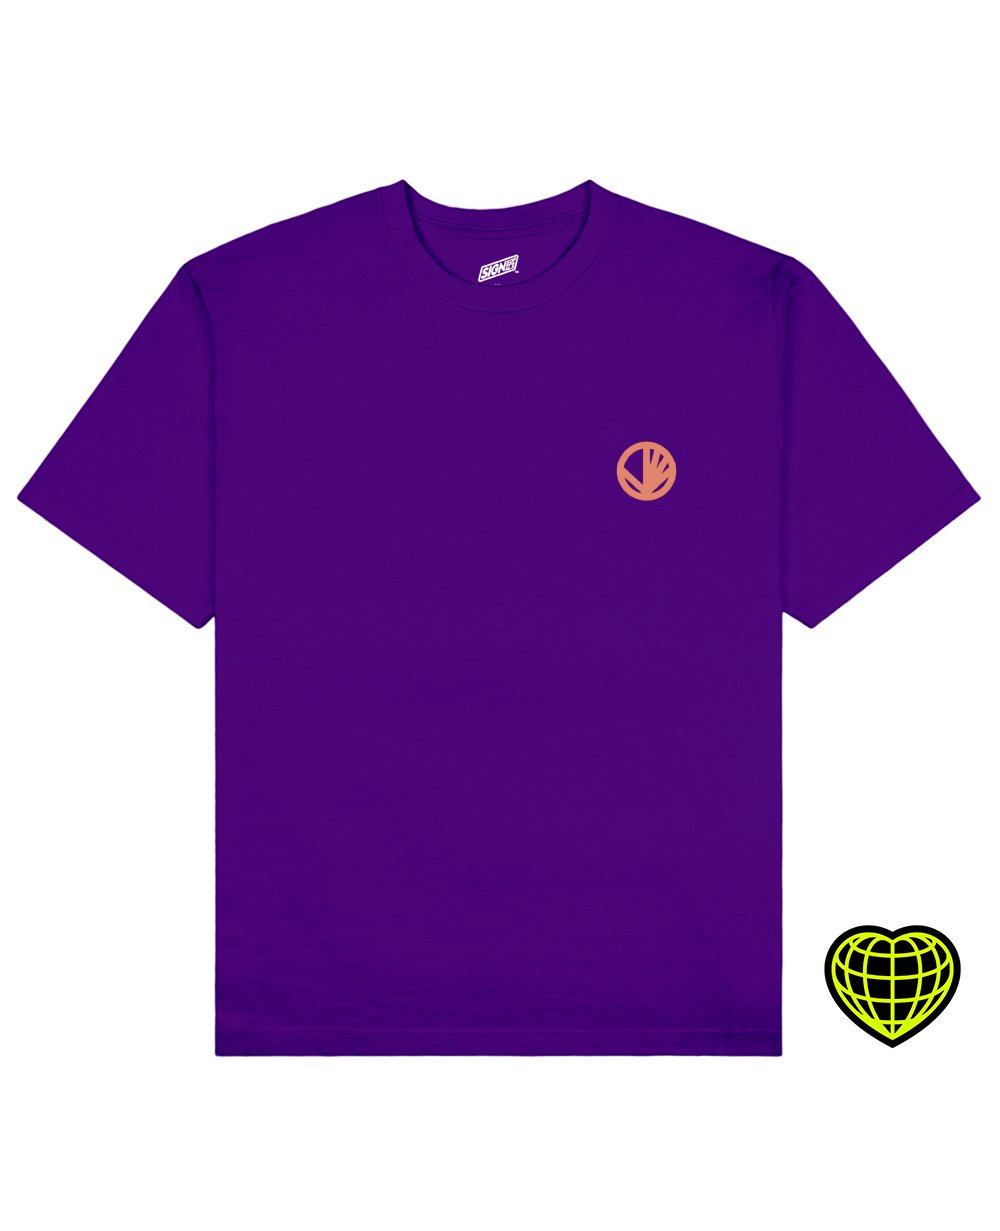 Circle with beams Print T-shirt in Purple - T-Shirts - Signs of Signals - BRANMA